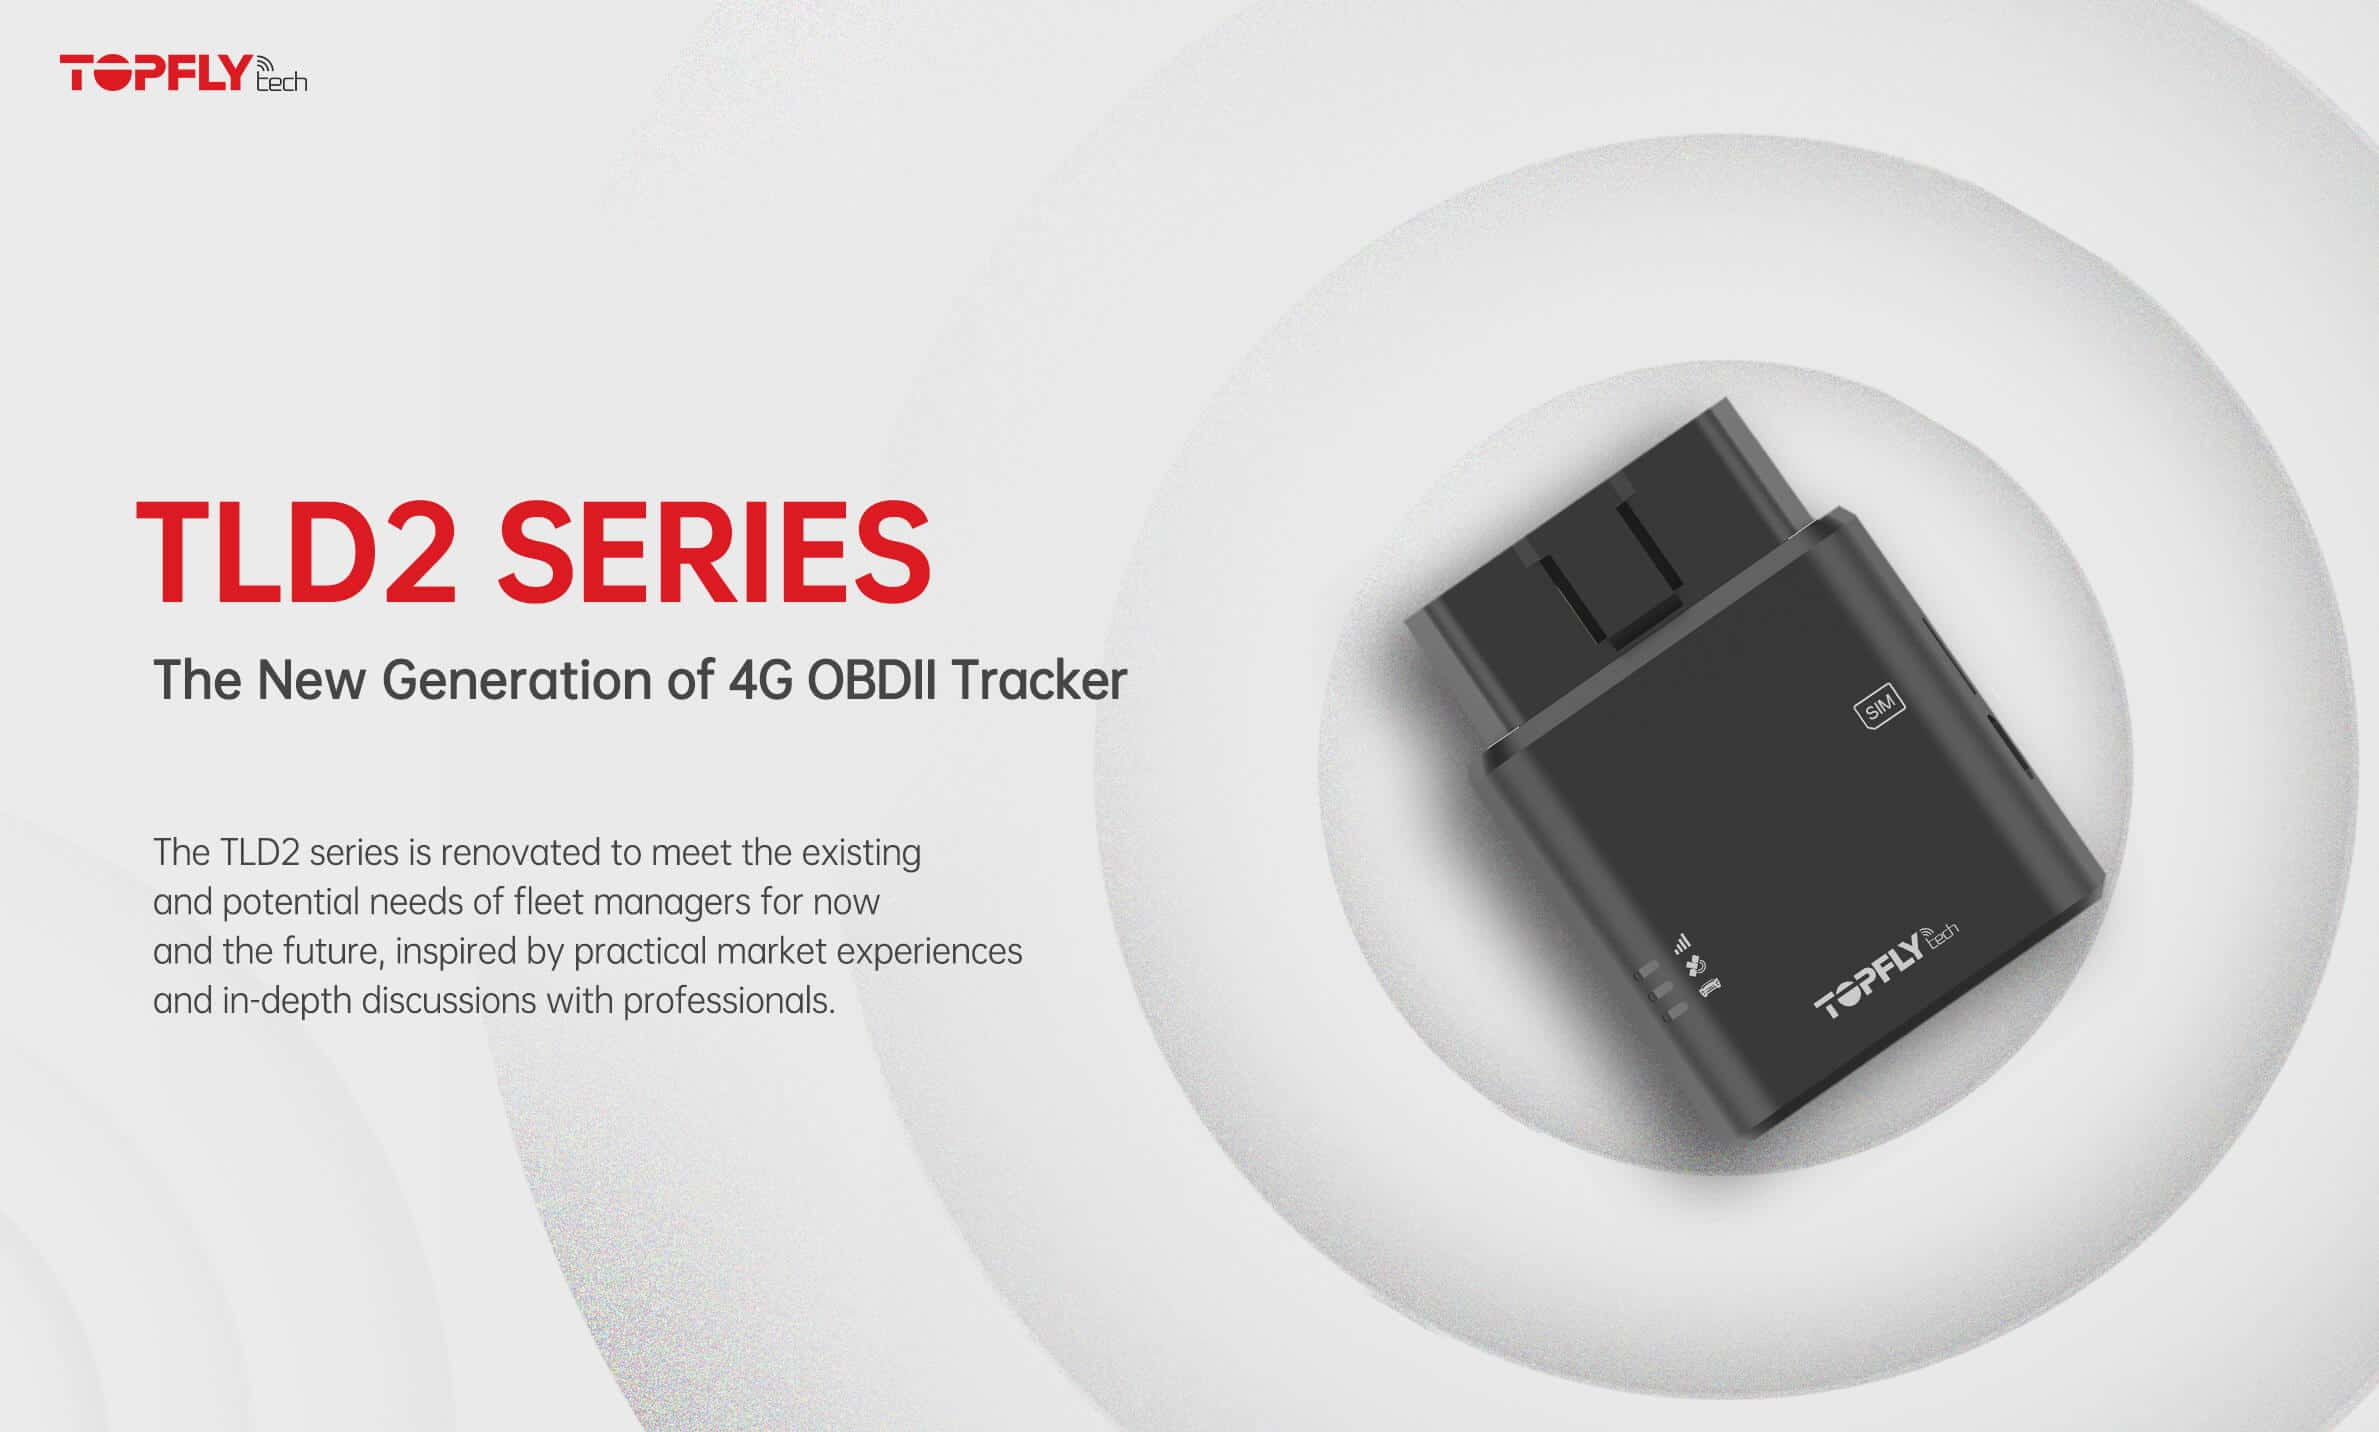 TLD2 Series | The Next Generation of OBDII Tracker